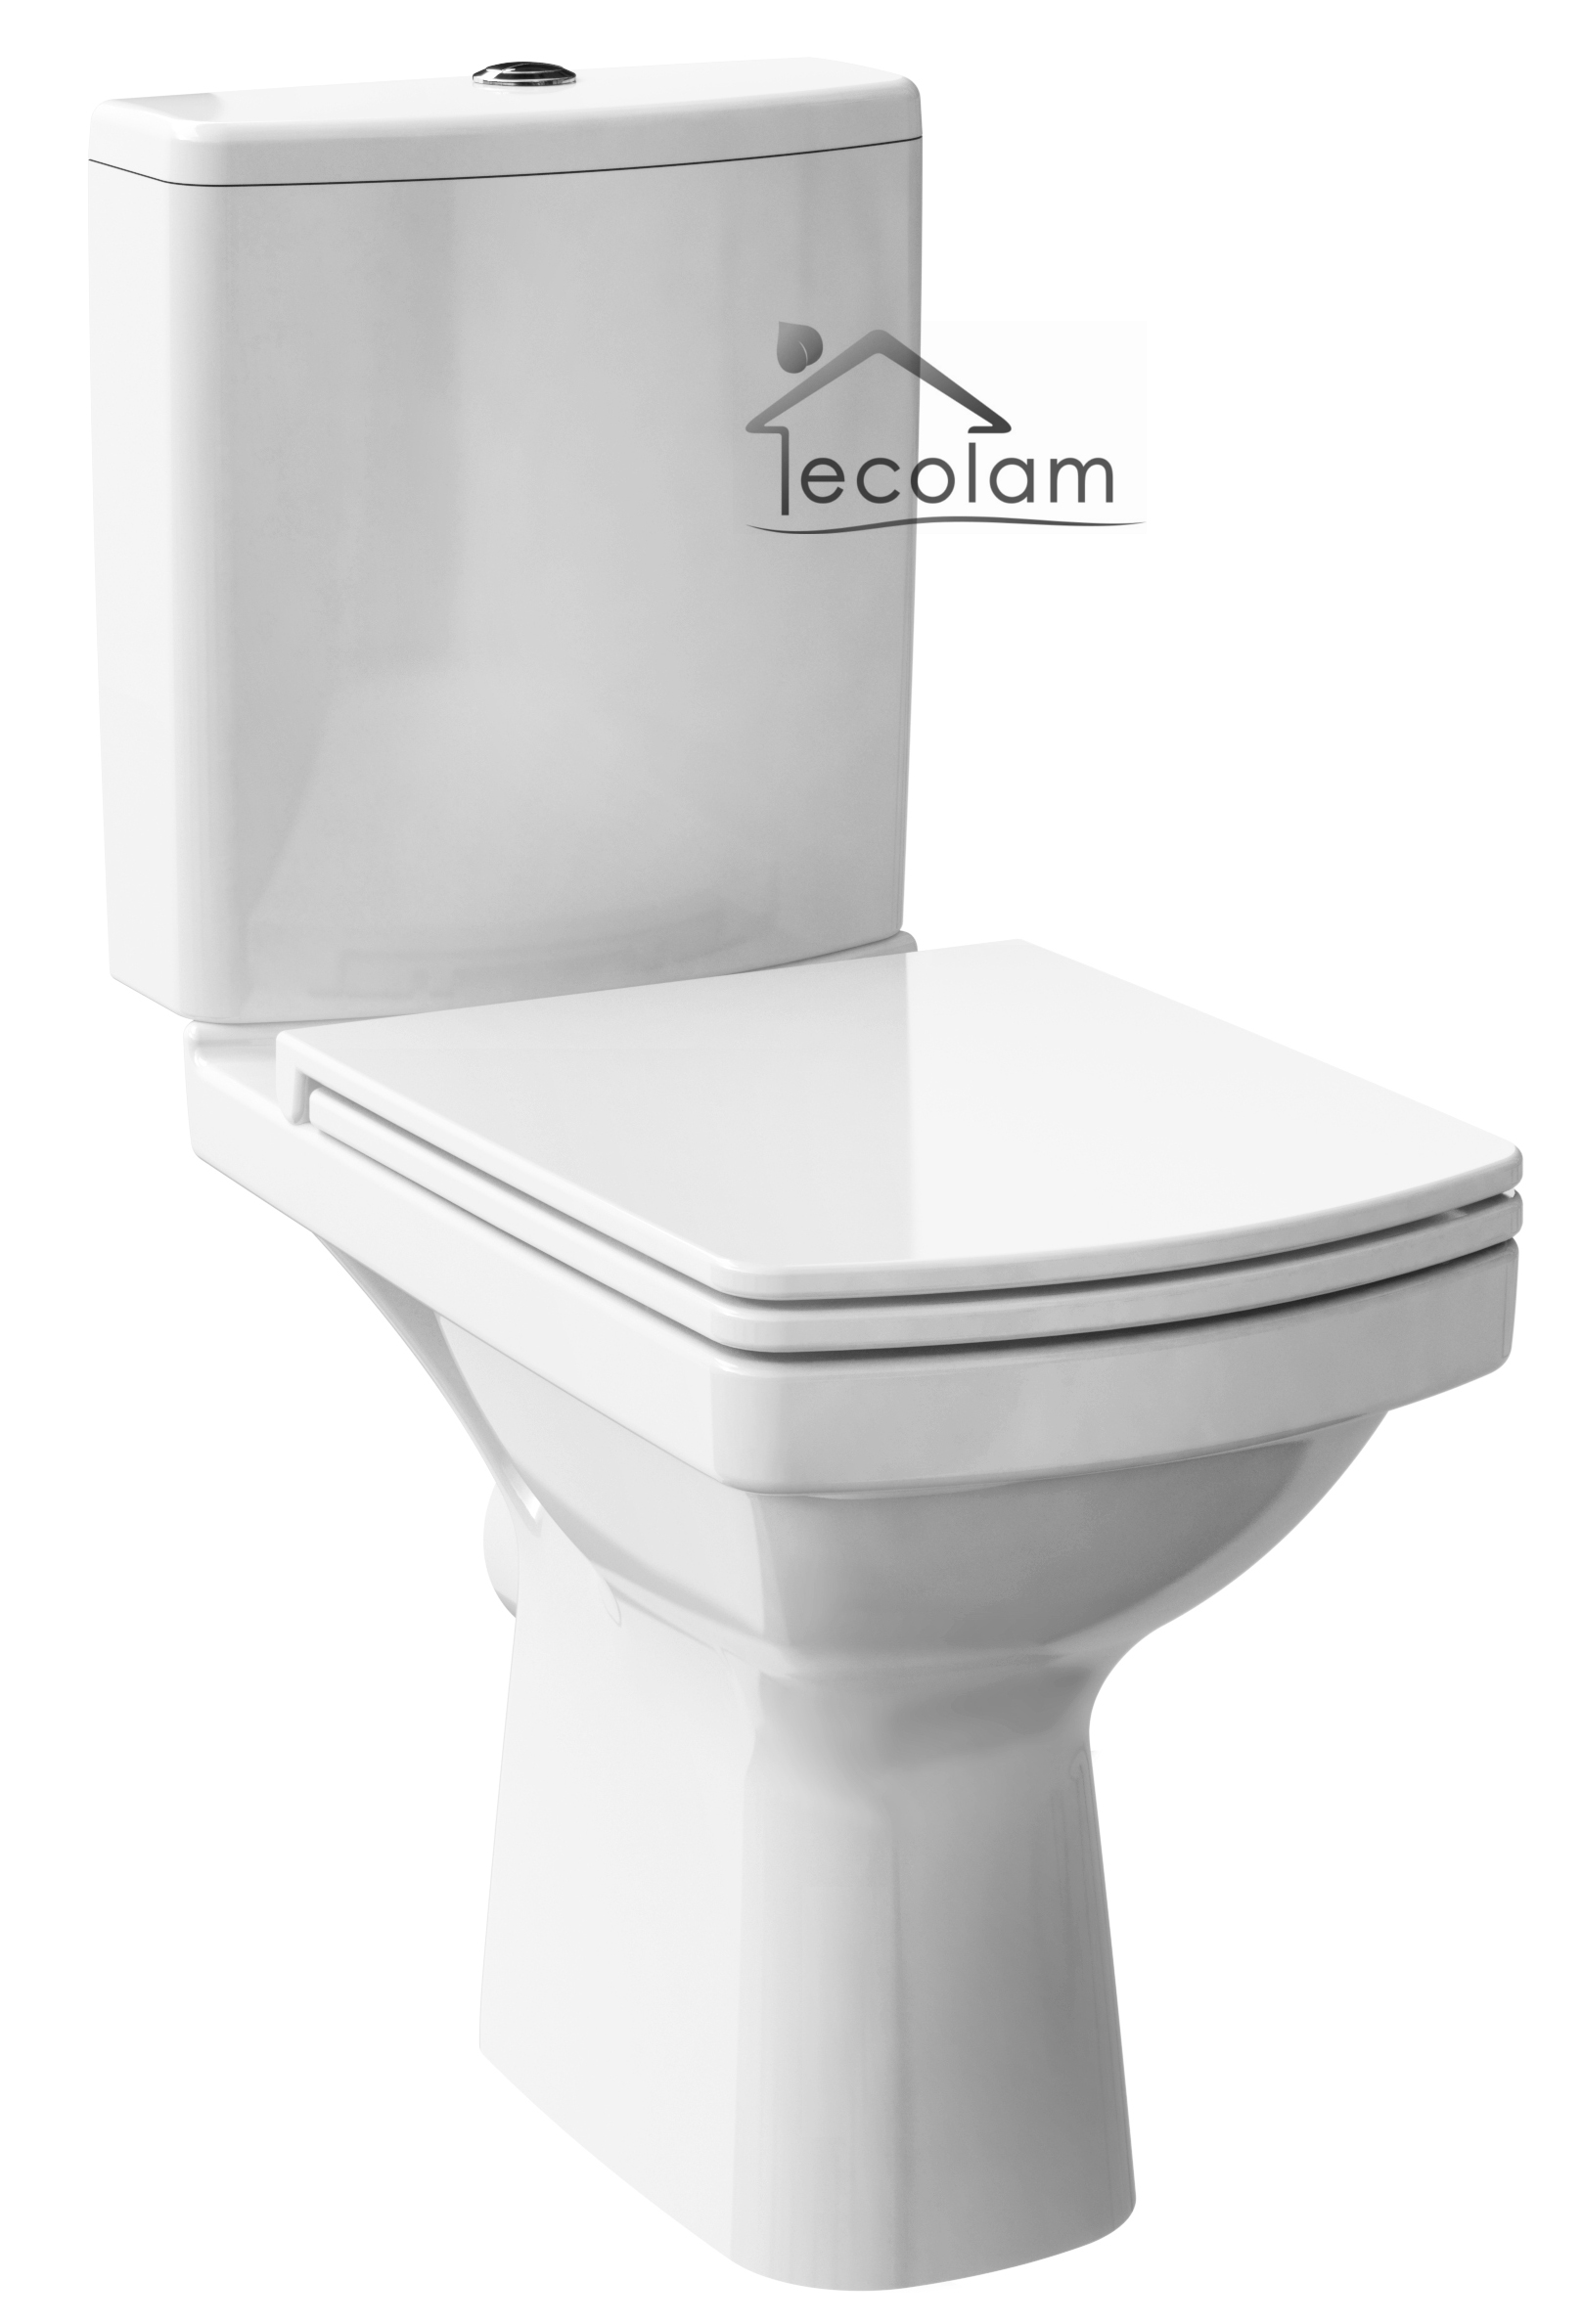 wc toilette stand tiefsp ler sp lkasten clean pro keramik beschichtet soft close ebay. Black Bedroom Furniture Sets. Home Design Ideas